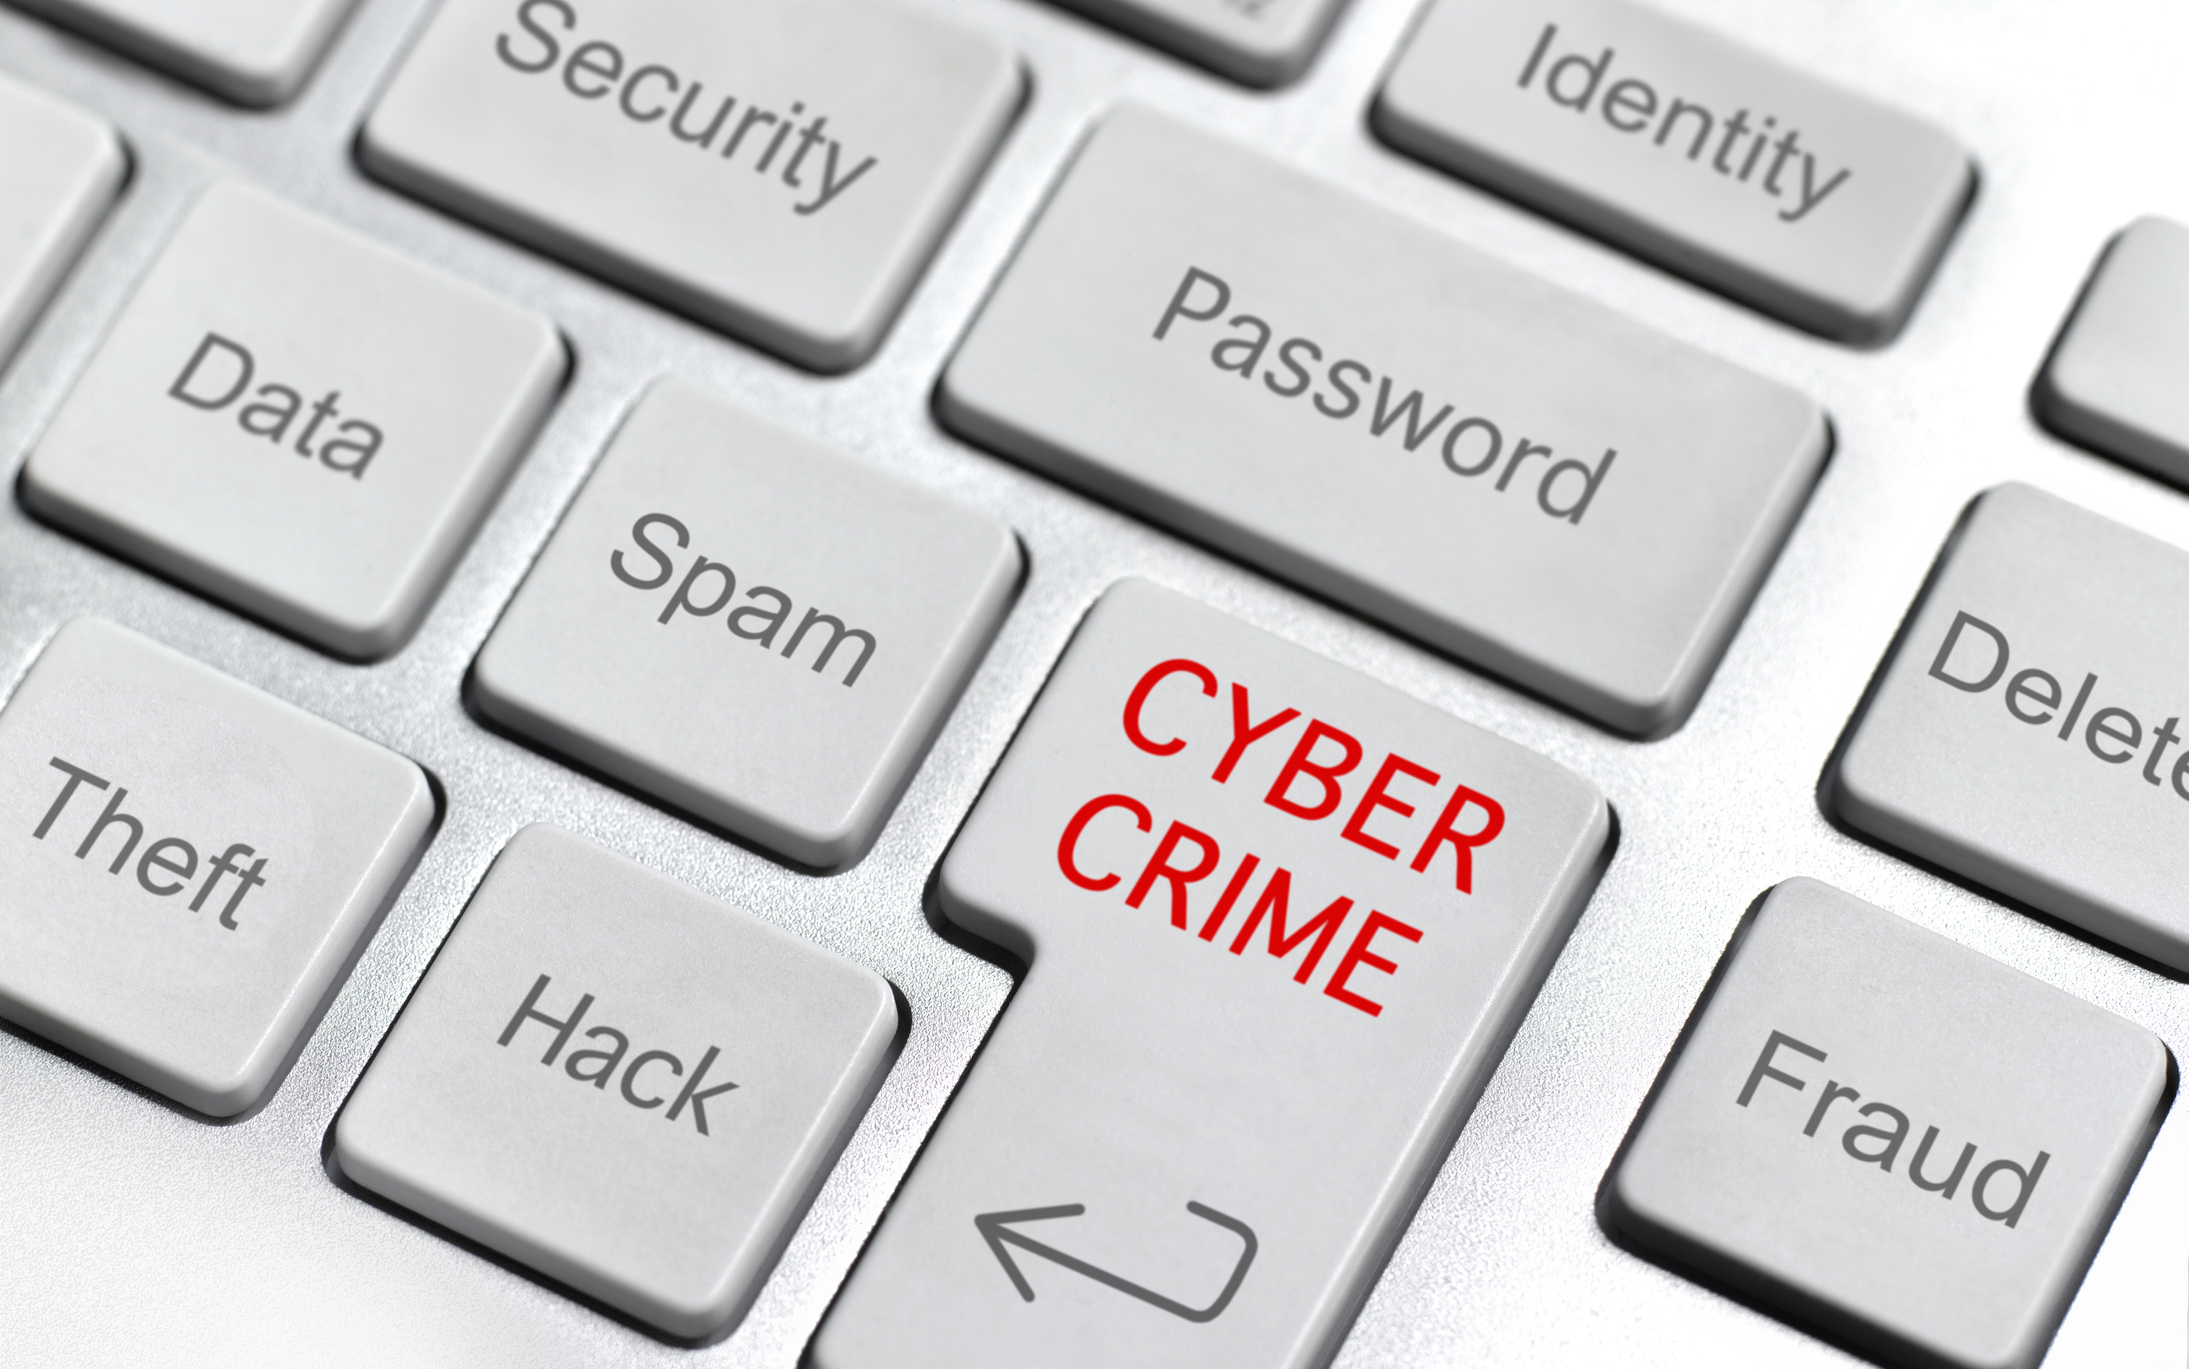 CYBER CRIME ON THE INTERNET